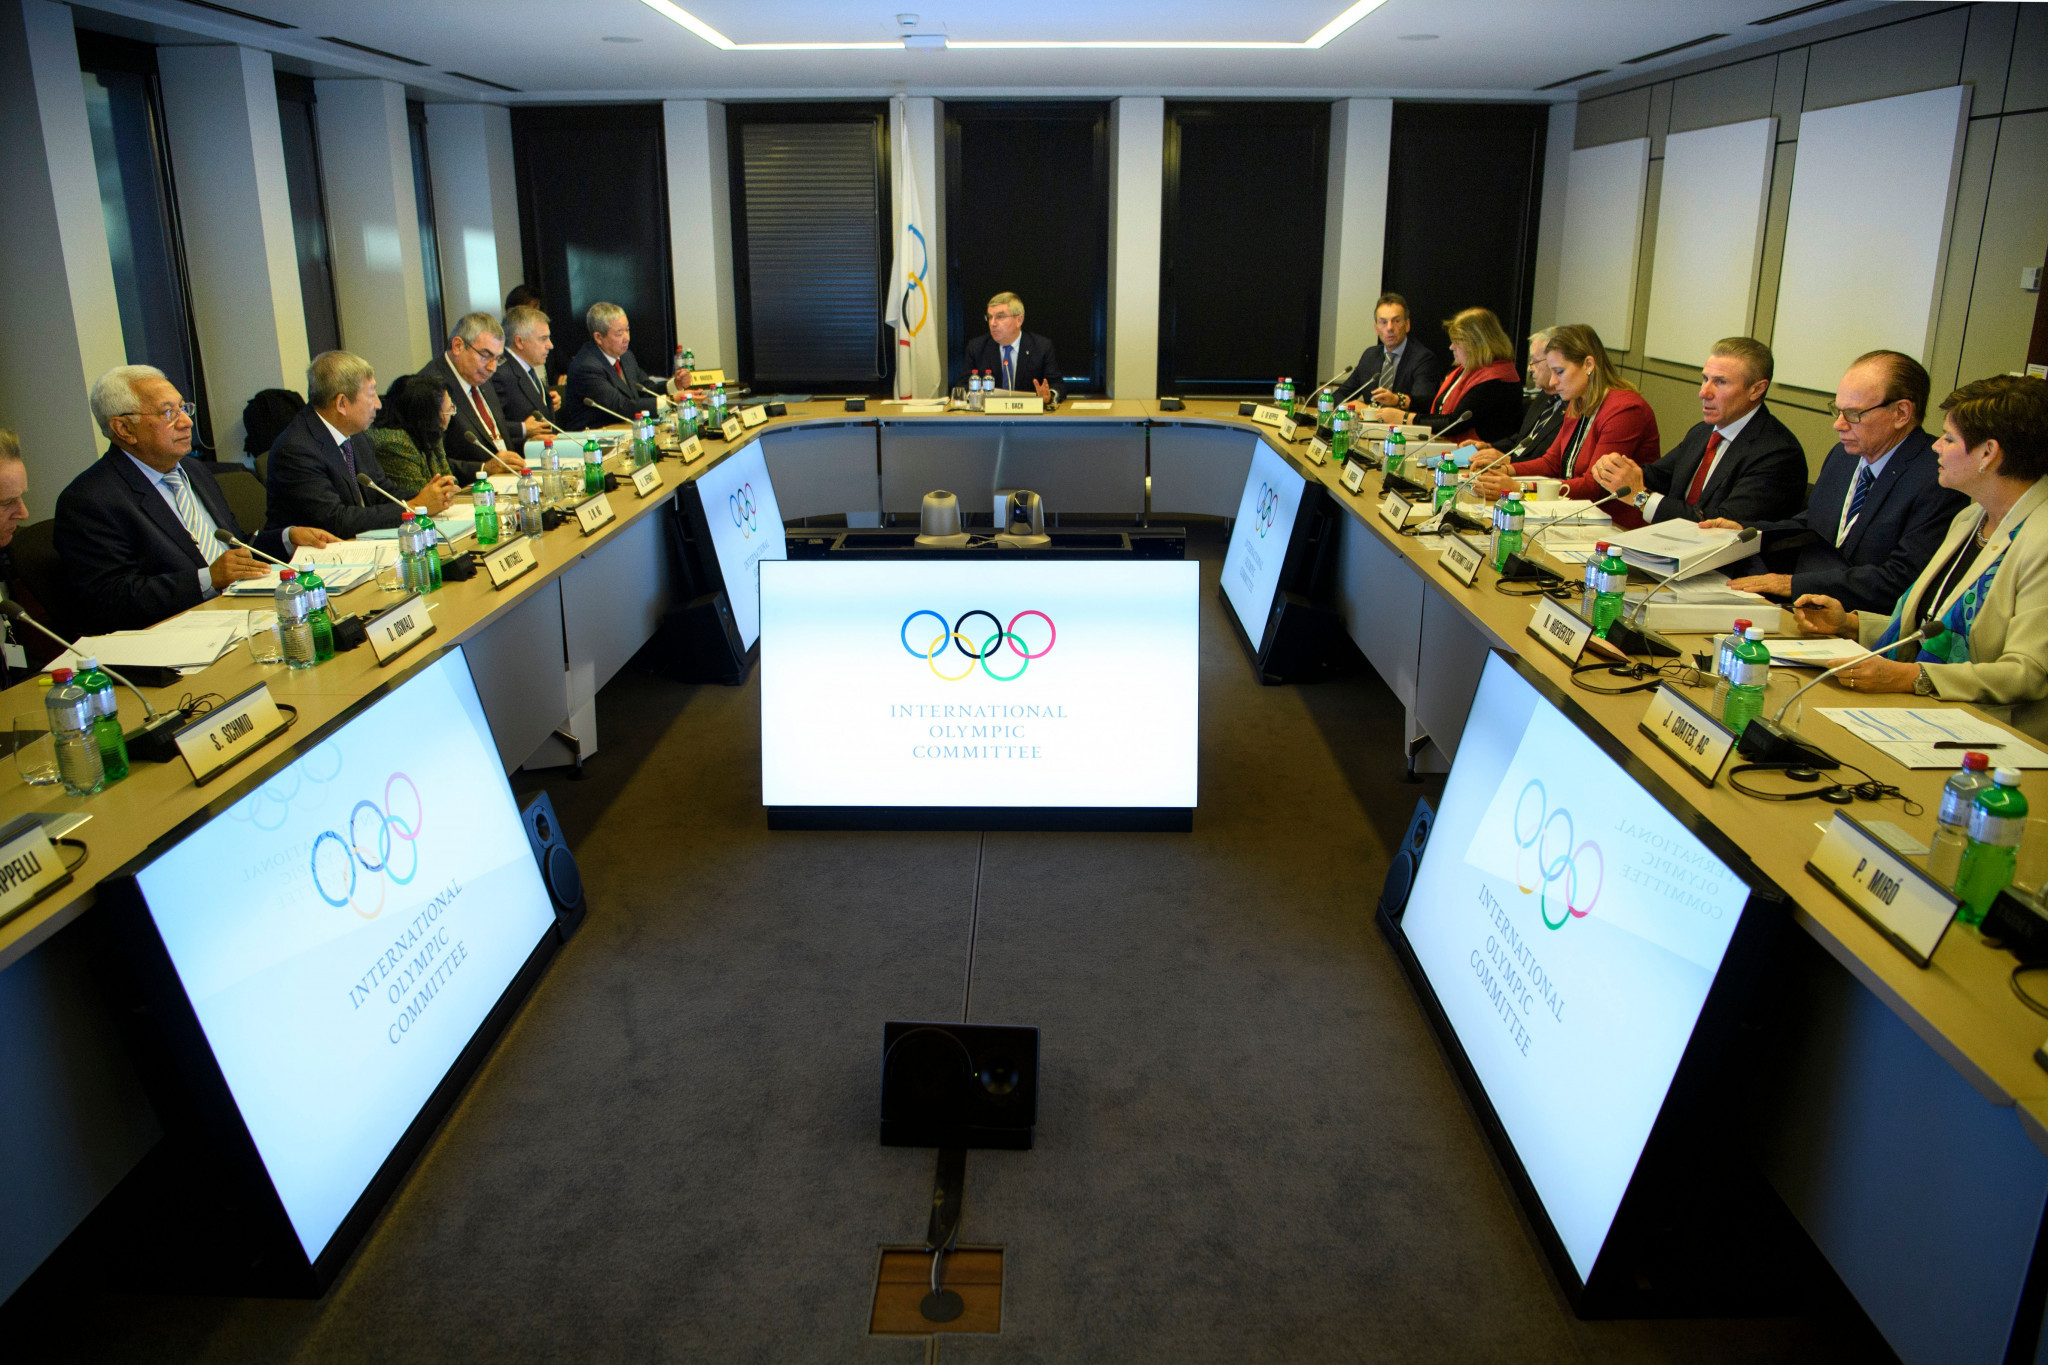 IOC Executive Board approved the proposed date change for Paris 2024 ©Getty Images